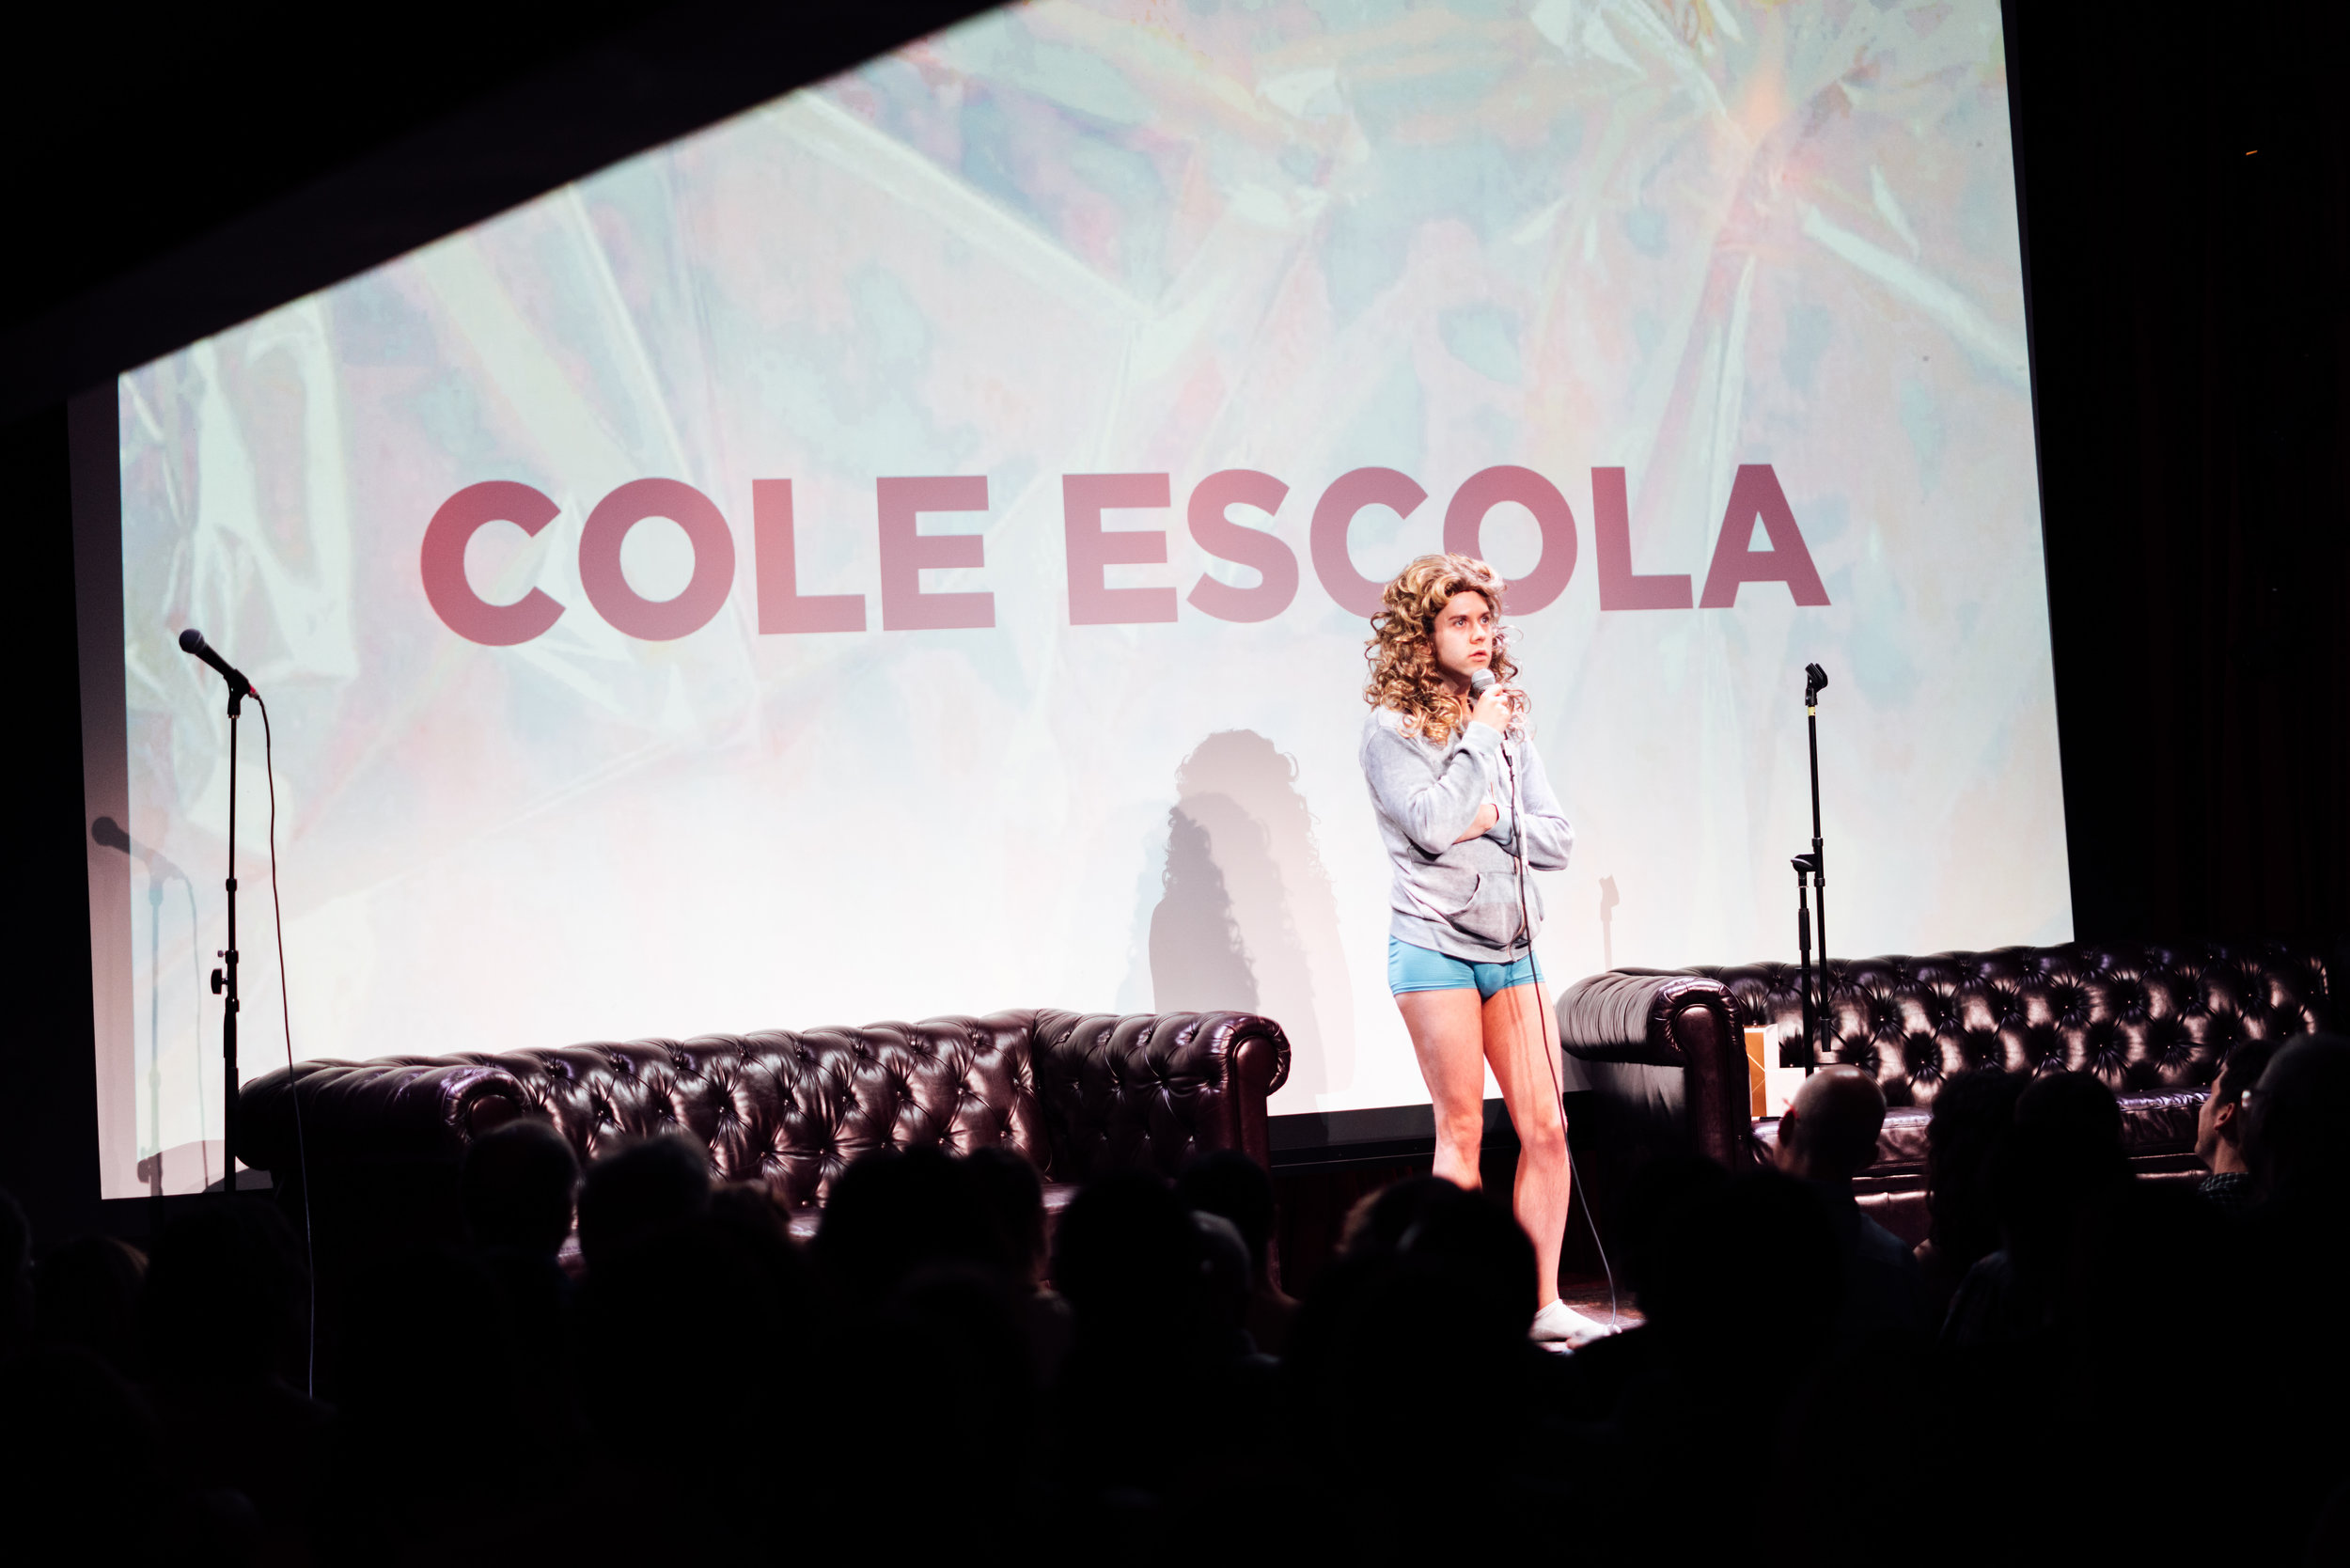 cole-escola-the-exhibition.jpg